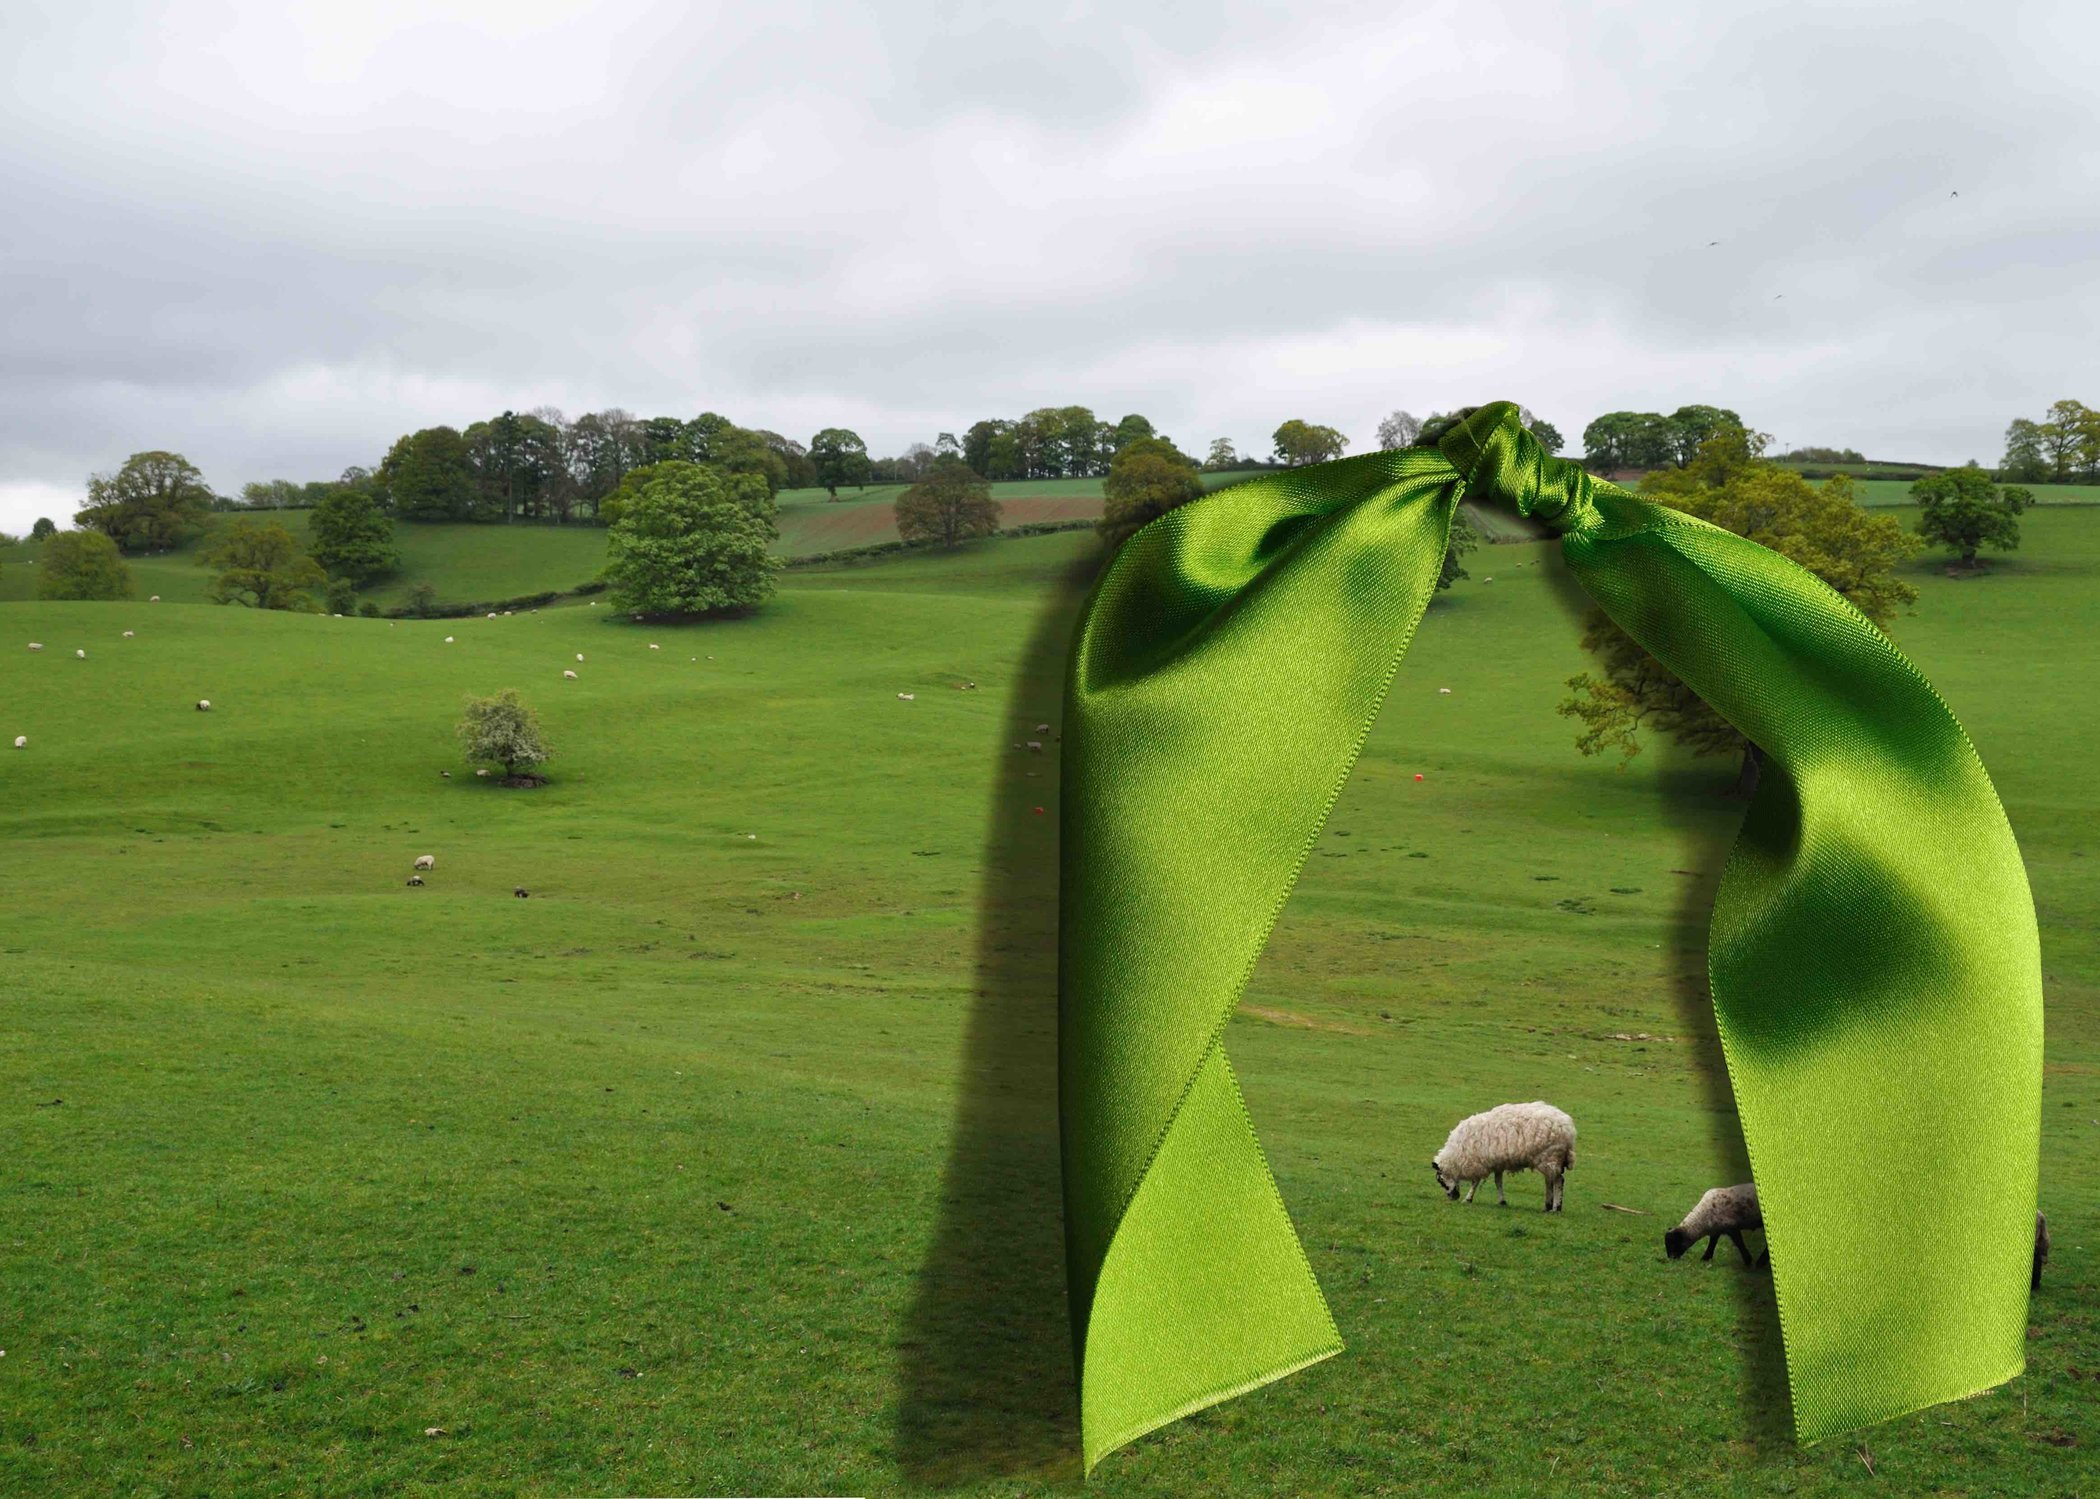 Sheep & Green Bow from the Landscape series by A A small.jpg